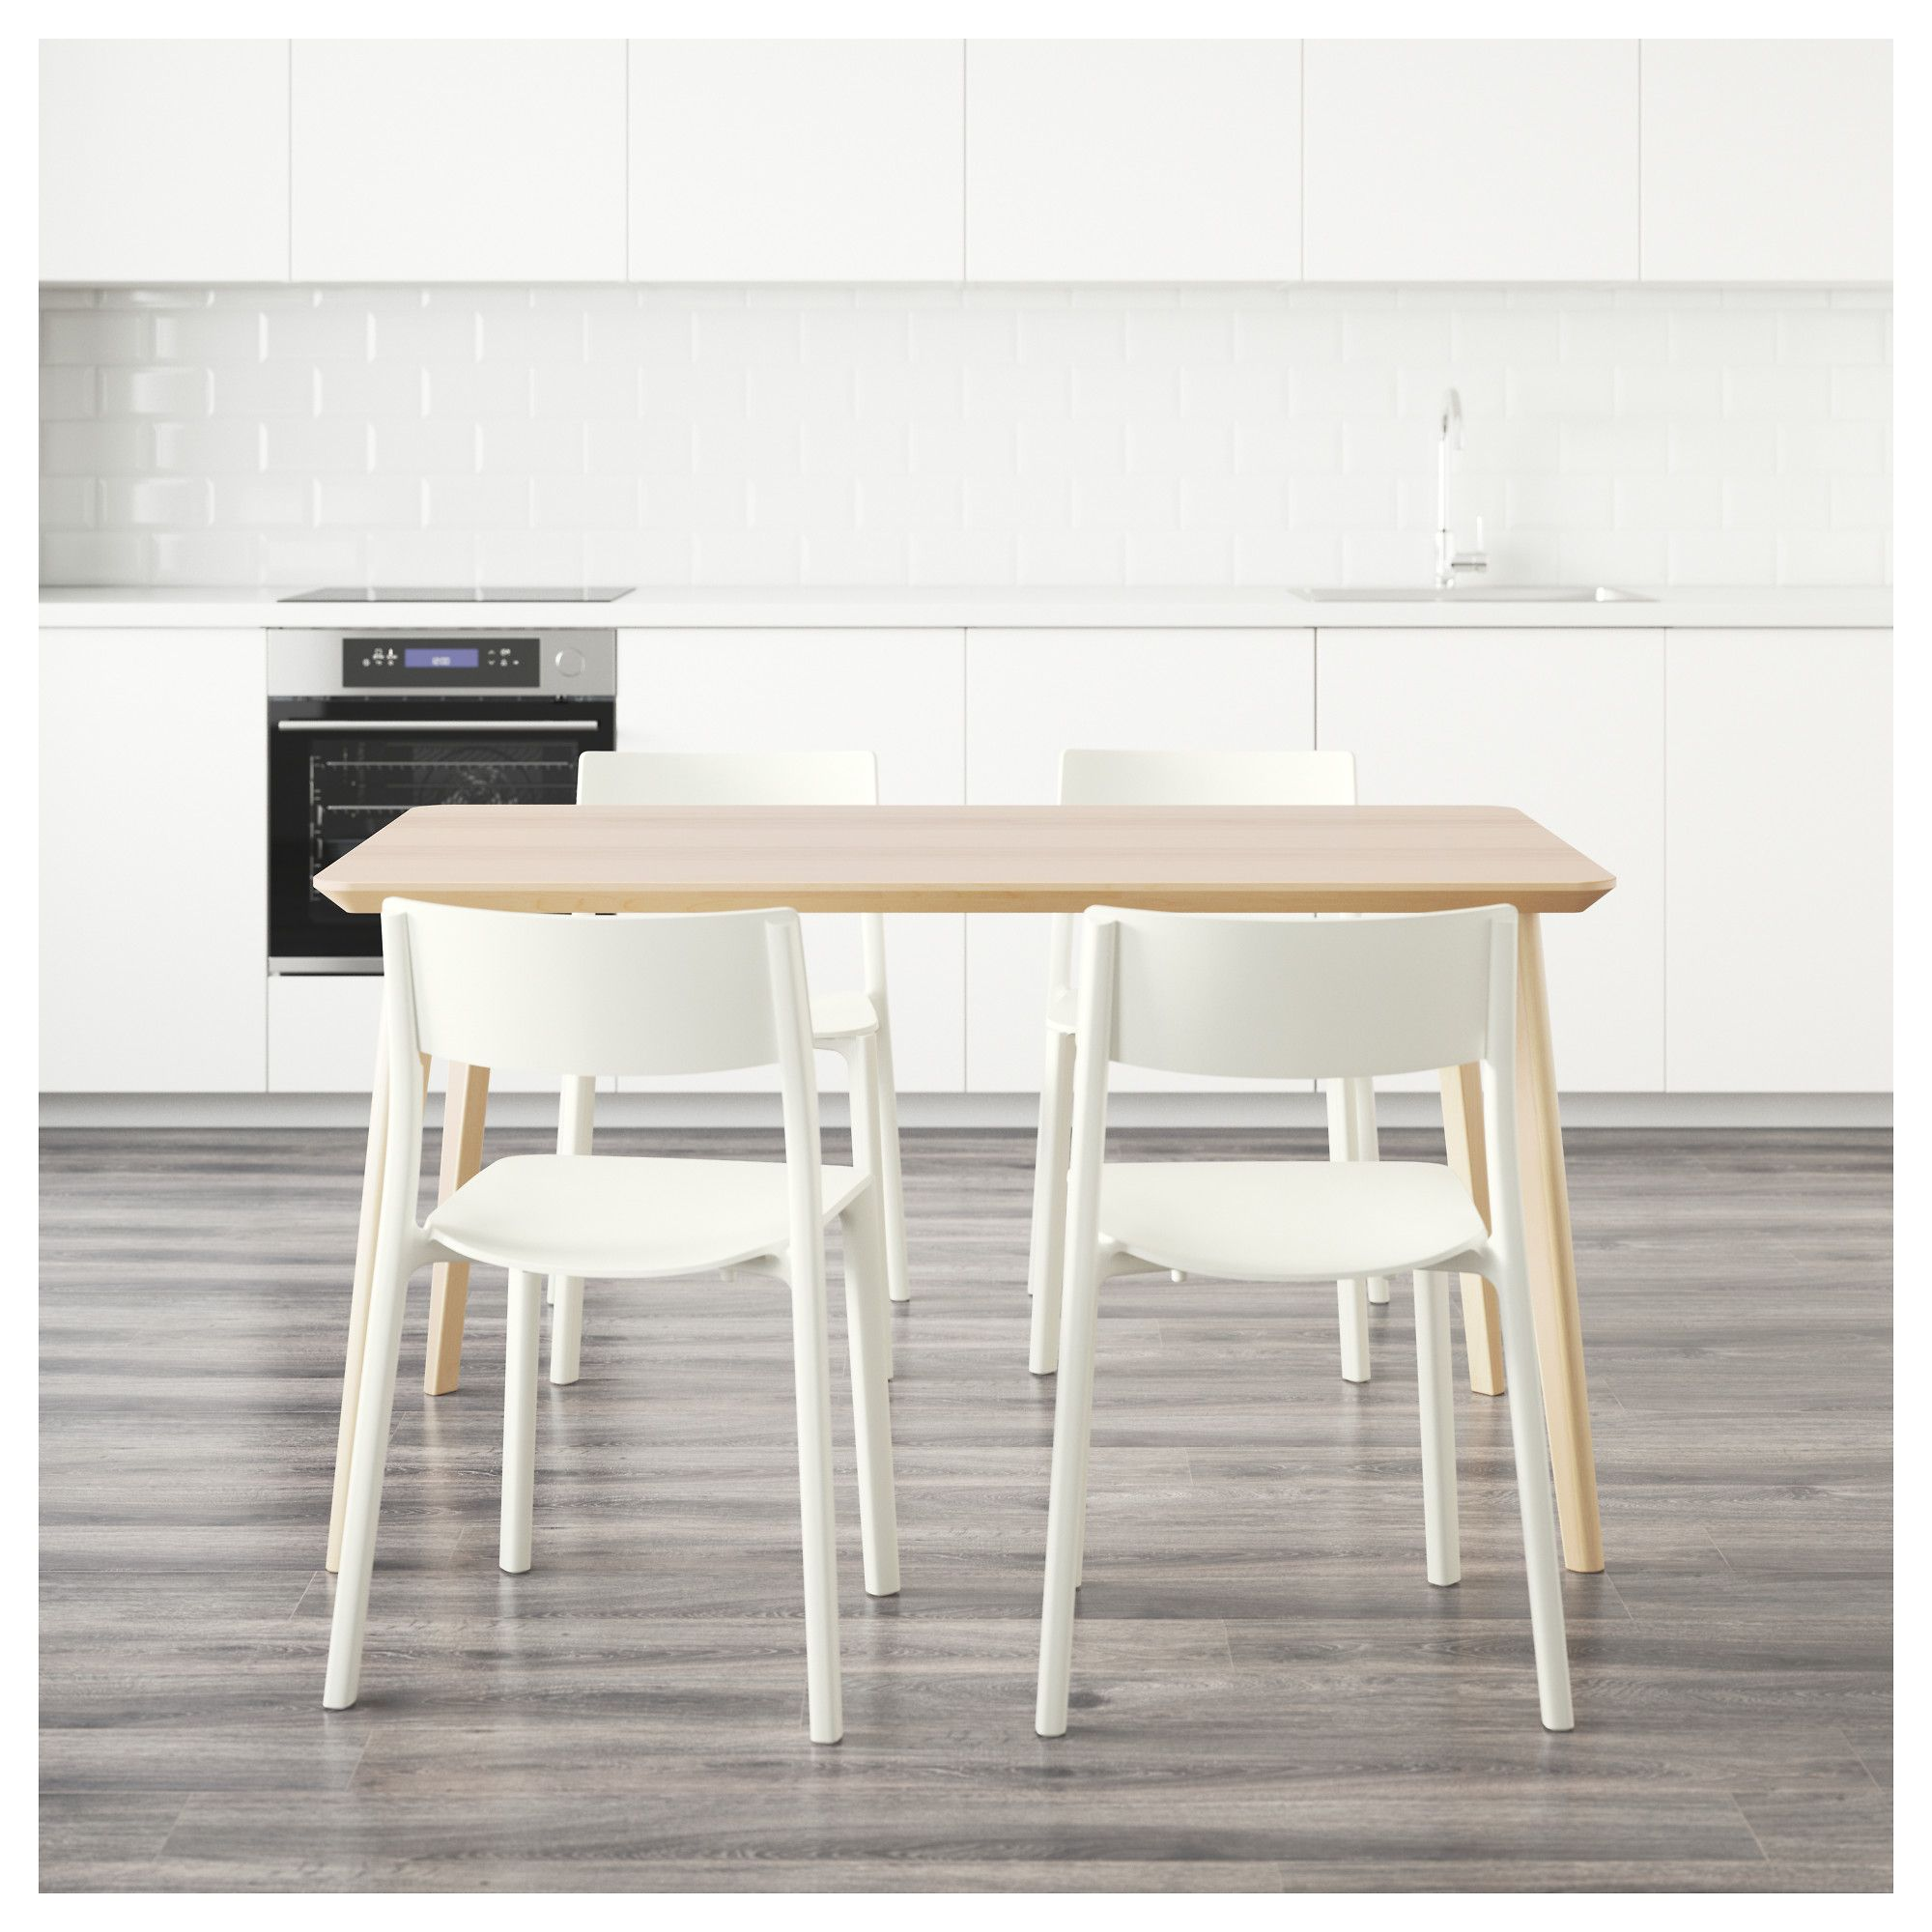 Janinge Table Chairs Ikea 0444486 Pe595019 S5jpg